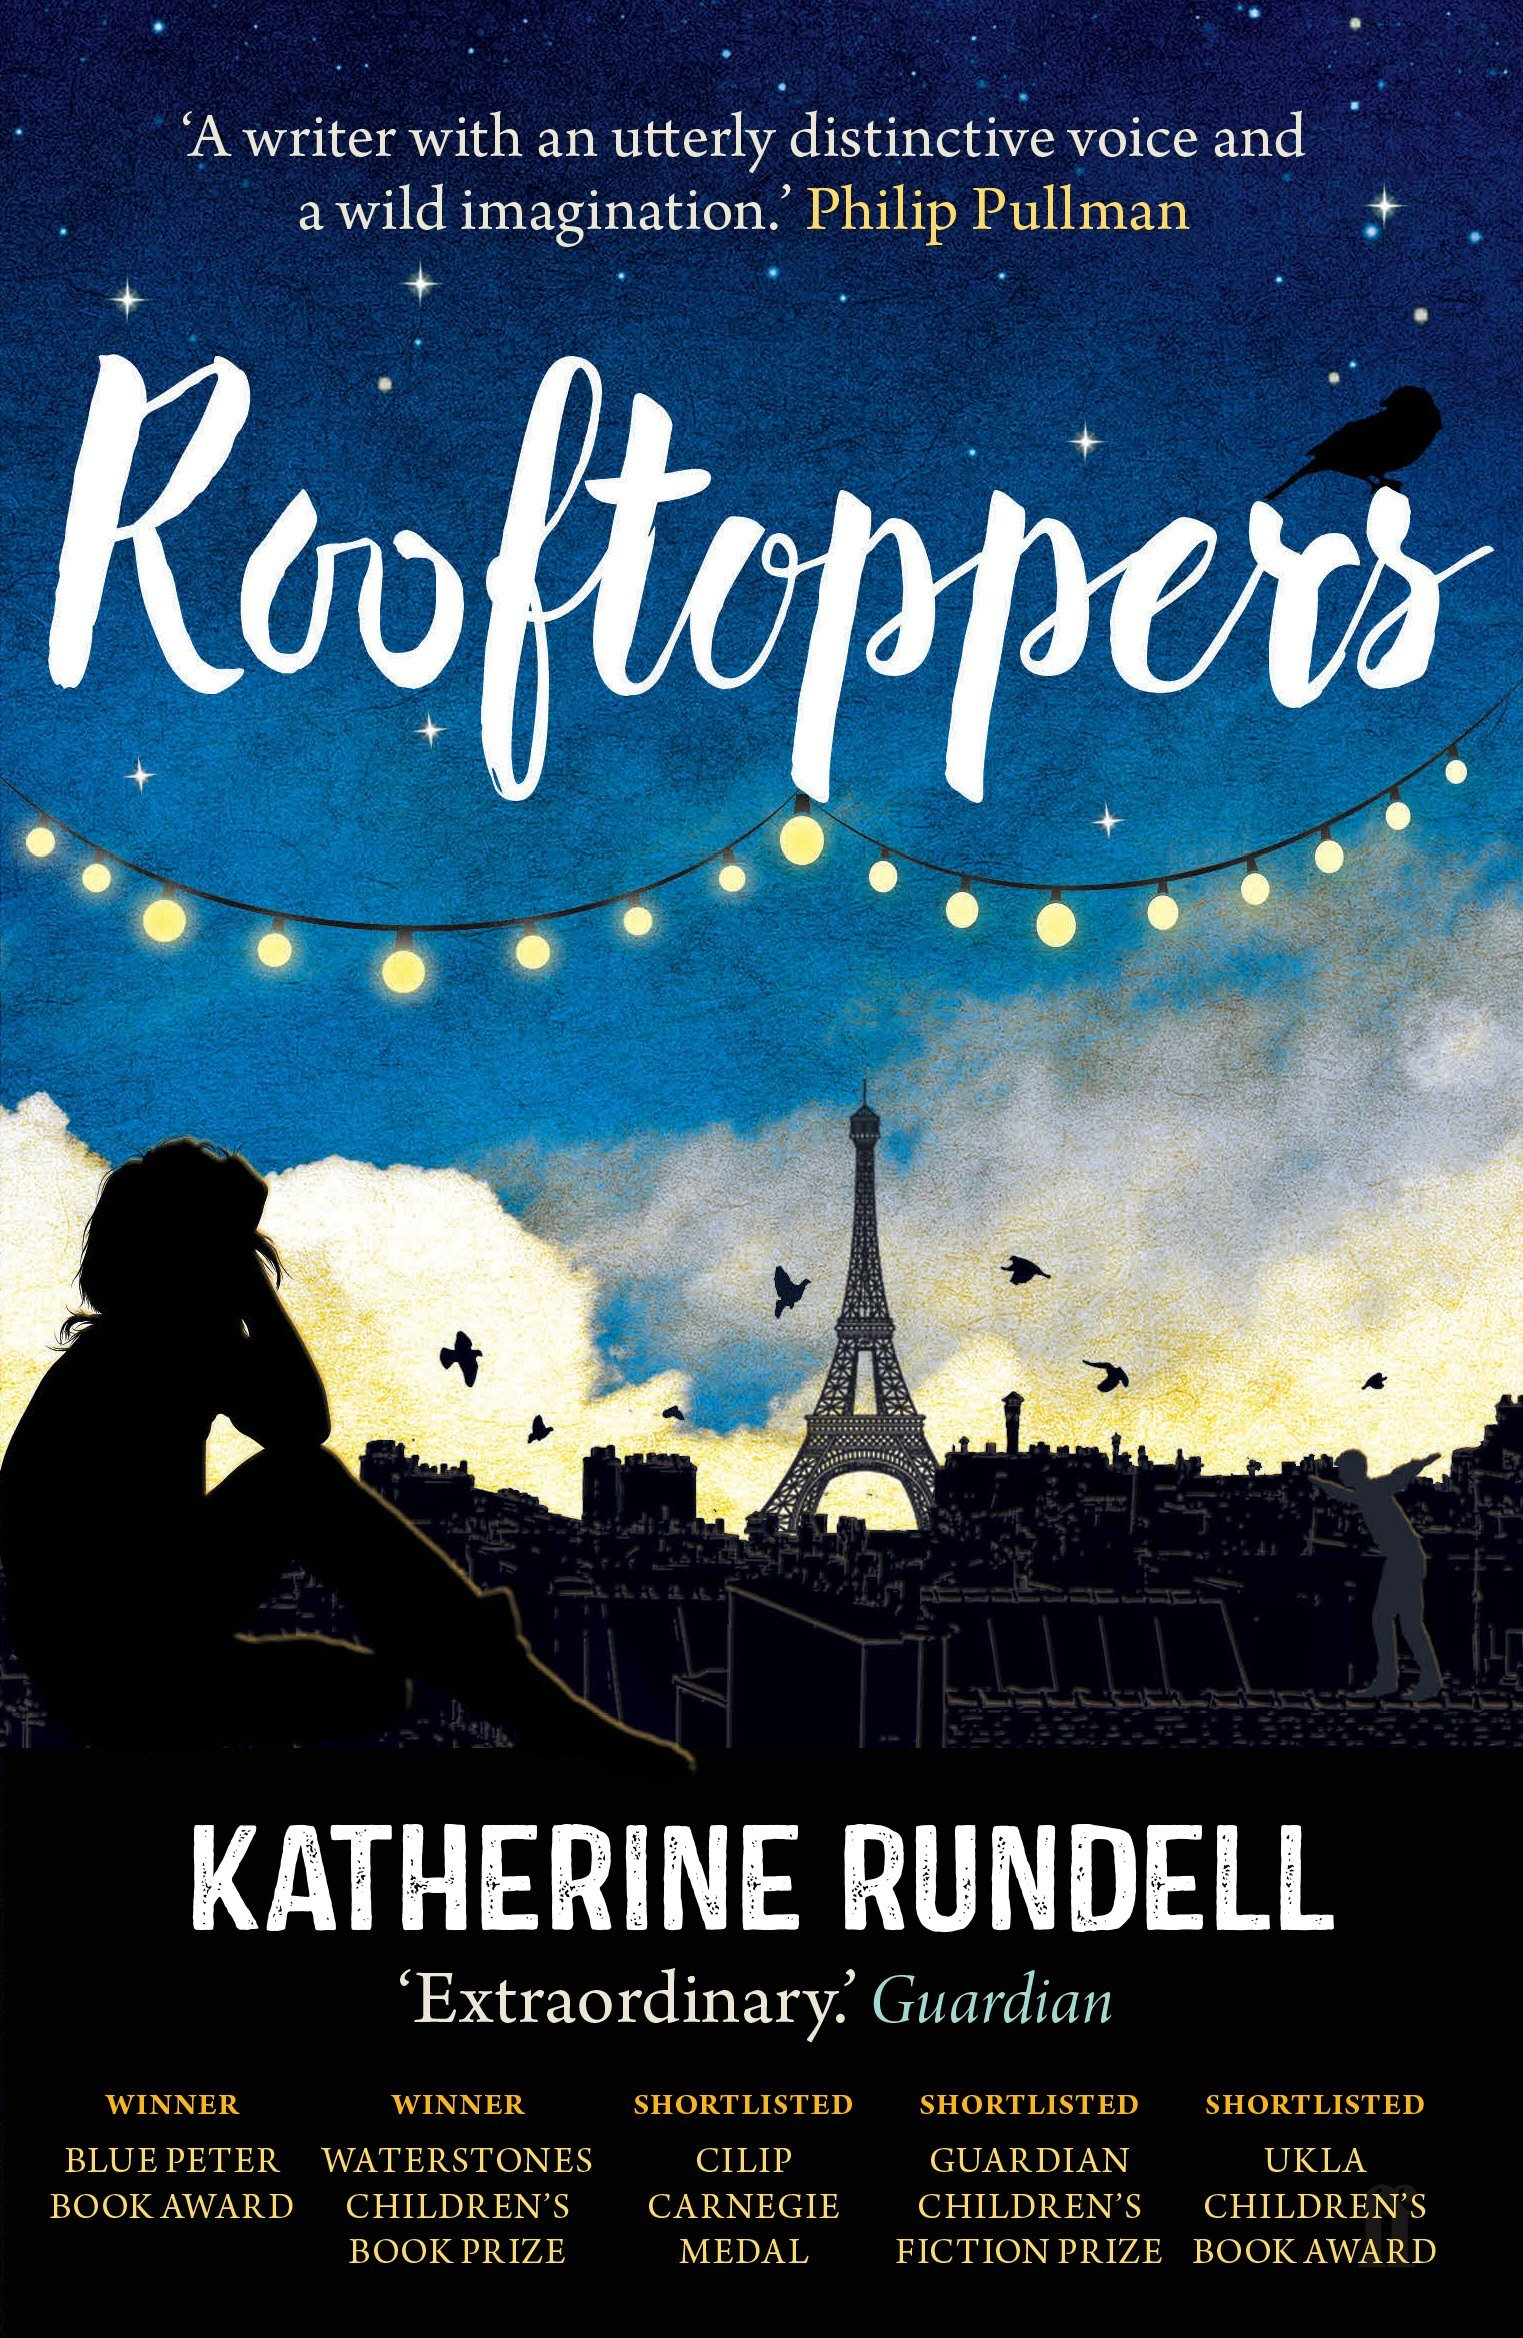 Roof-toppers by Katherine Rundell